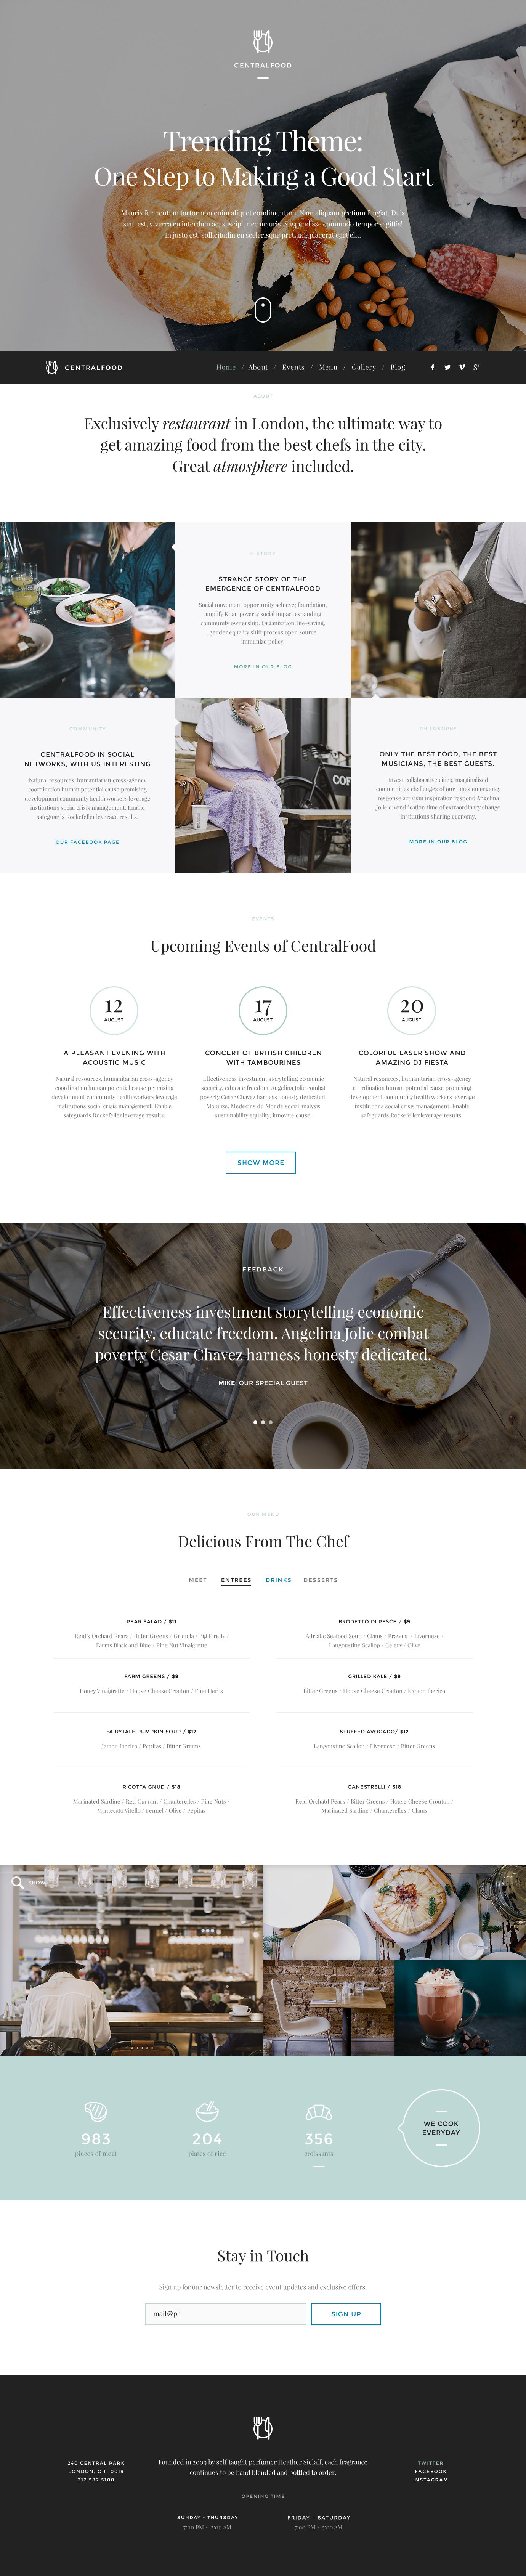 The Central Food Restaurant WordPress Design 53445, one of the best WordPress themes of its kind (cafe and restaurant, most popular), also known as central food restaurant WordPress template, cafe WordPress template, food WordPress template, meal WordPress template, cuisine WordPress template, drink WordPress template, menu WordPress template, waiters WordPress template, dish WordPress template, wine WordPress template, taste WordPress template, tasty WordPress template, flavor WordPress template, reservation WordPress template, specials WordPress template, recipe WordPress template, launch WordPress template, dinner WordPress template, testimonials WordPress template, offers WordPress template, kitchen WordPress template, cookbook WordPress template, vegetarian WordPress template, cocktail WordPress template, beverage WordPress template, specials WordPress template, gifts WordPress template, bonuses WordPress template, discount WordPress template, patrons WordPress template, reservation and related with central food restaurant, cafe, food, meal, cuisine, drink, menu, waiters, dish, wine, taste, tasty, flavor, reservation, specials, recipe, launch, dinner, testimonials, offers, kitchen, cookbook, vegetarian, cocktail, beverage, specials, gifts, bonuses, discount, patrons, reservation, etc.